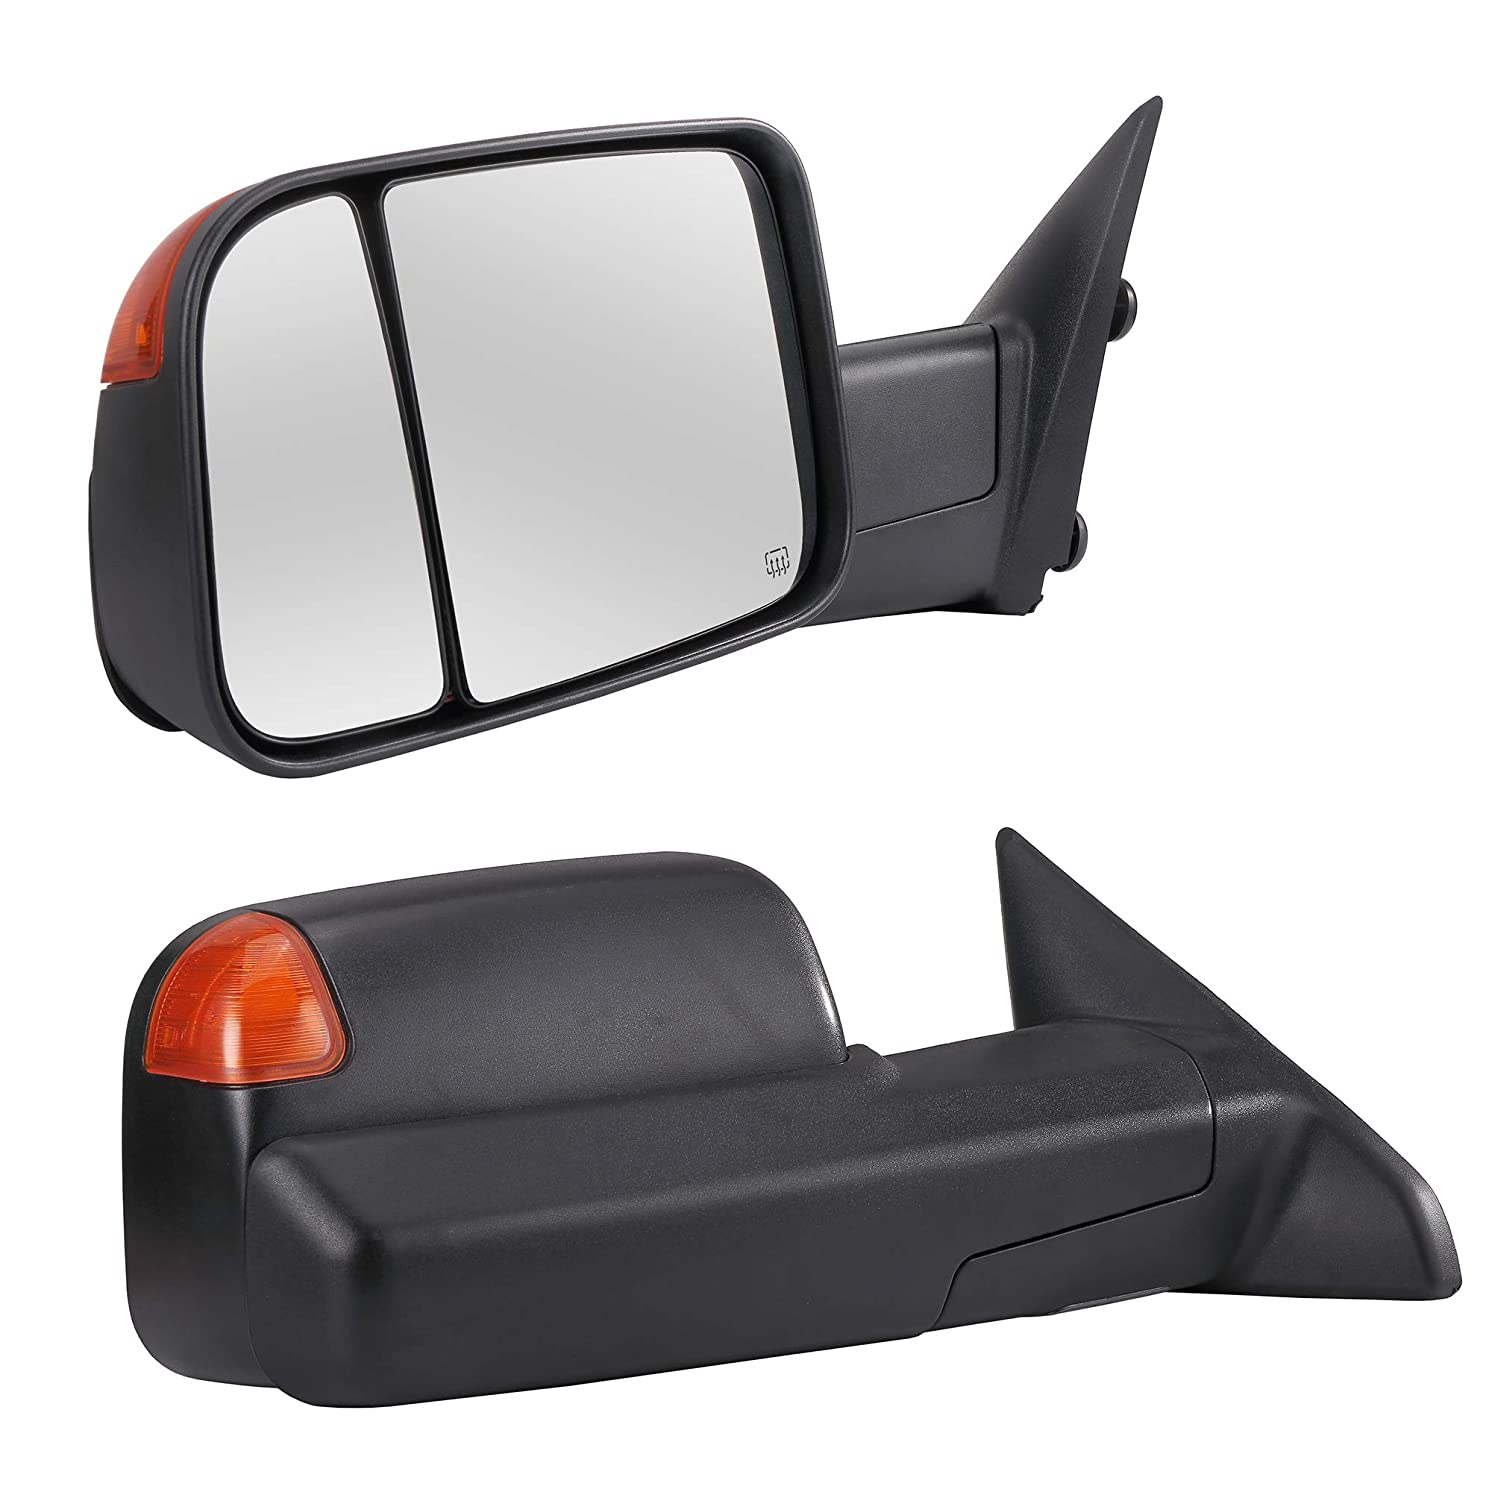 Towing Mirrors Passenger & Driver Side Power Operated & Heated With Amber Signal Black Finish & Temperature Sensor Fits 09-17 Dodge Ram 1500 2500 3500 - Manual Folding